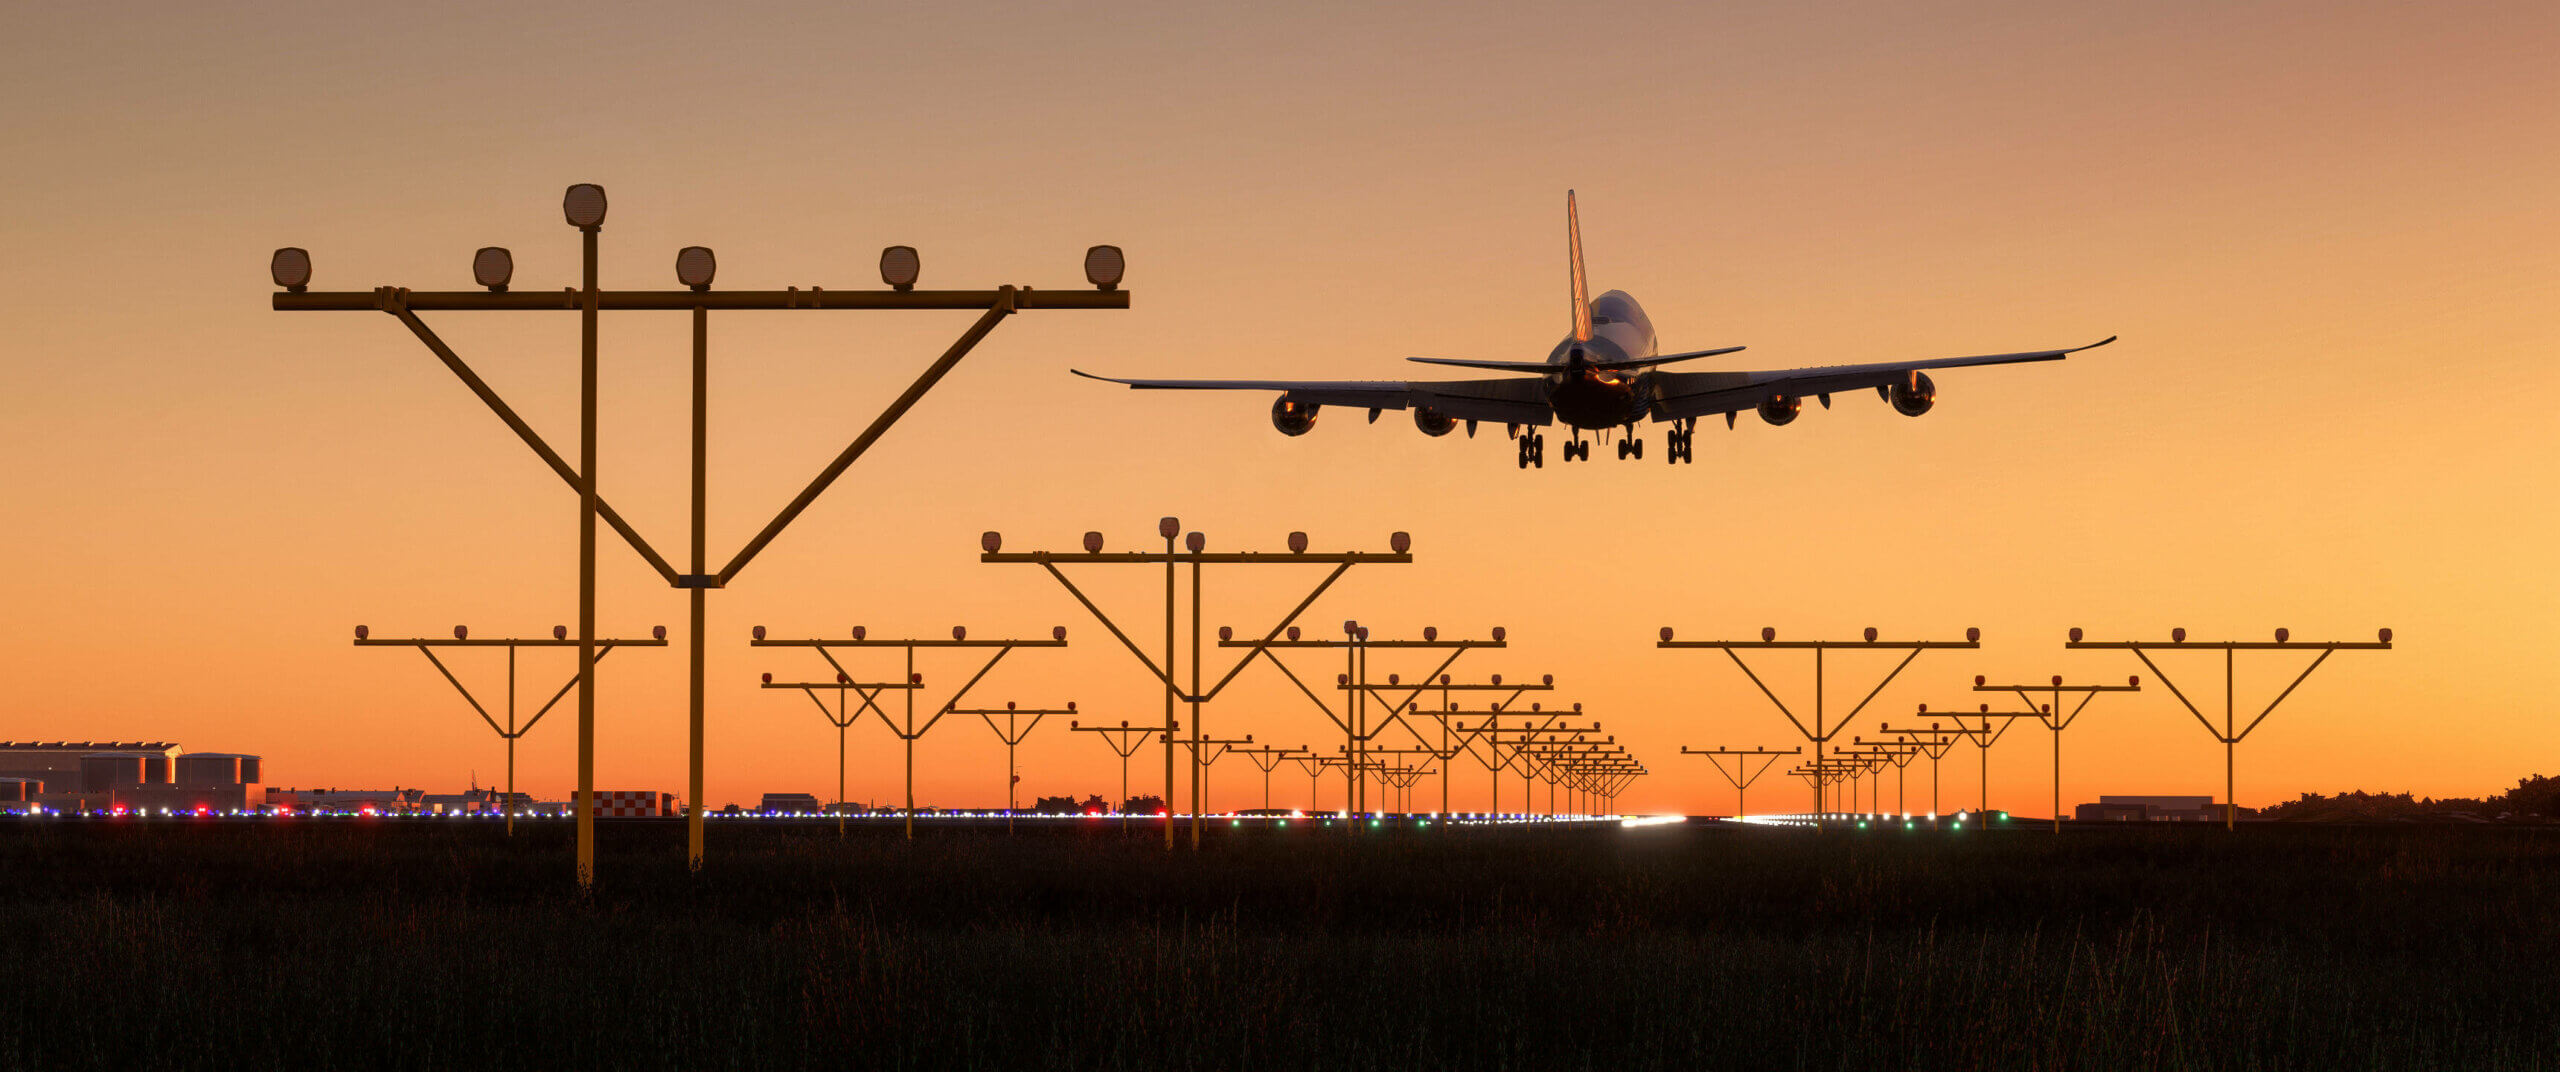 Plane coming in for final approach during sunset